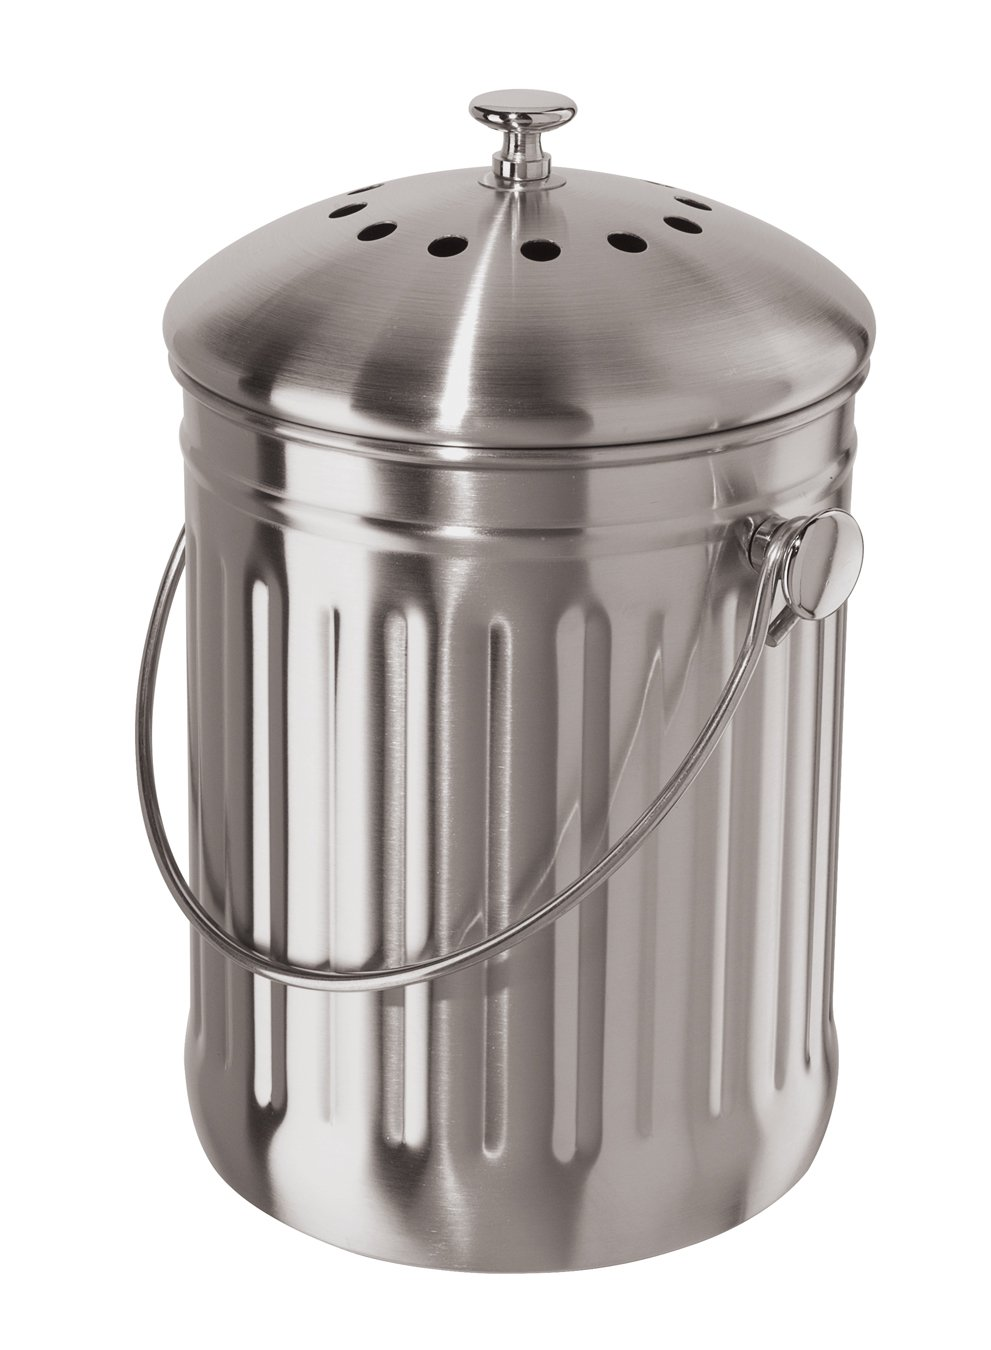 Oggi Stainless Steel Counter Composter with Charcoal Filter 7320